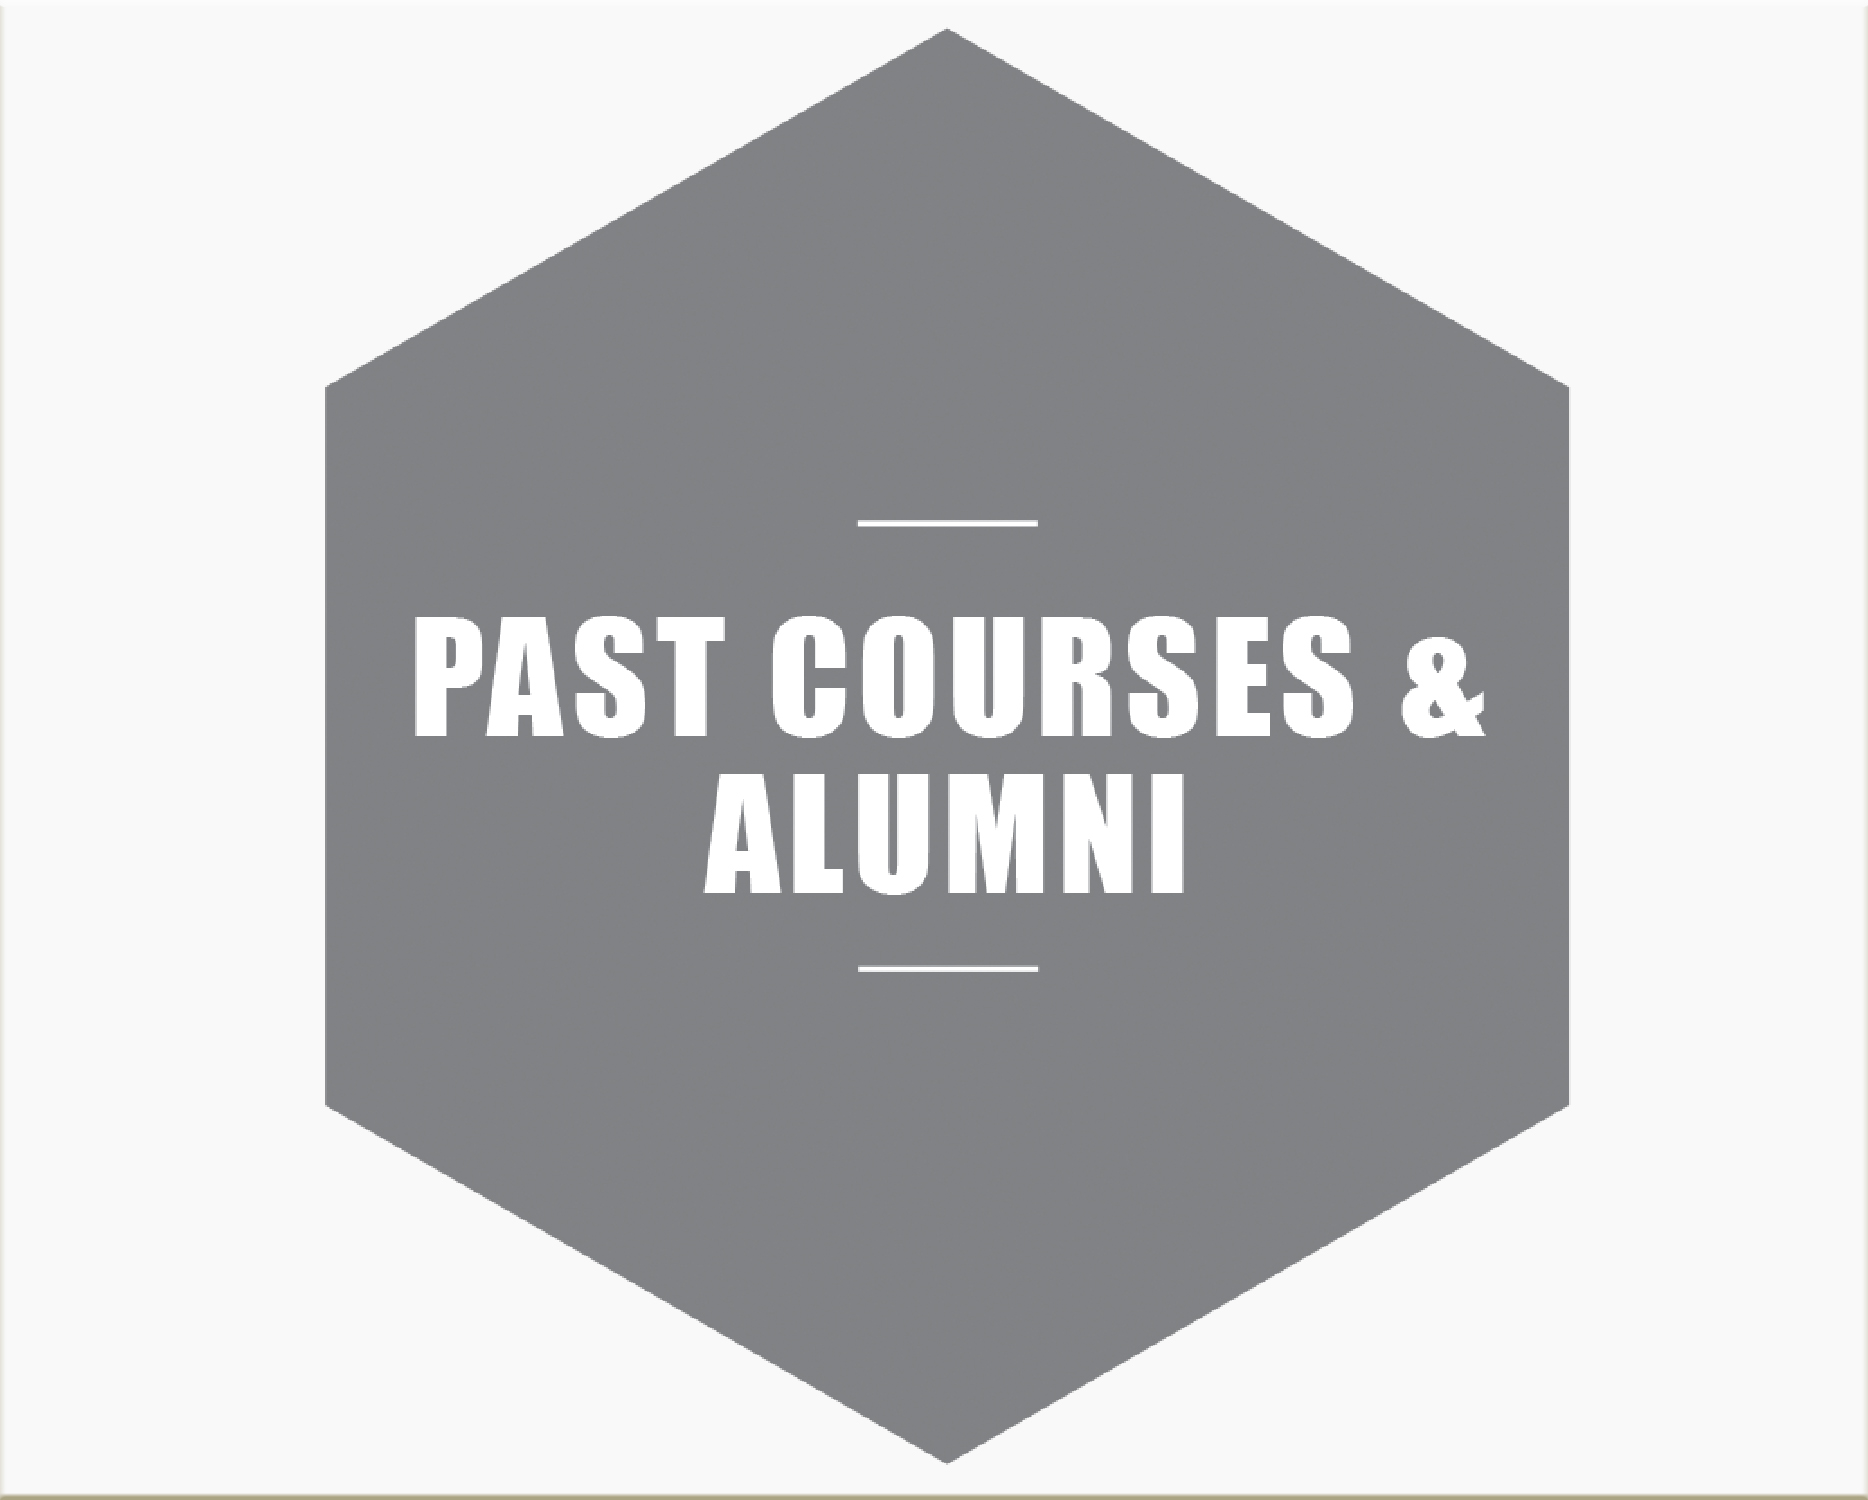 Past courses and alumni